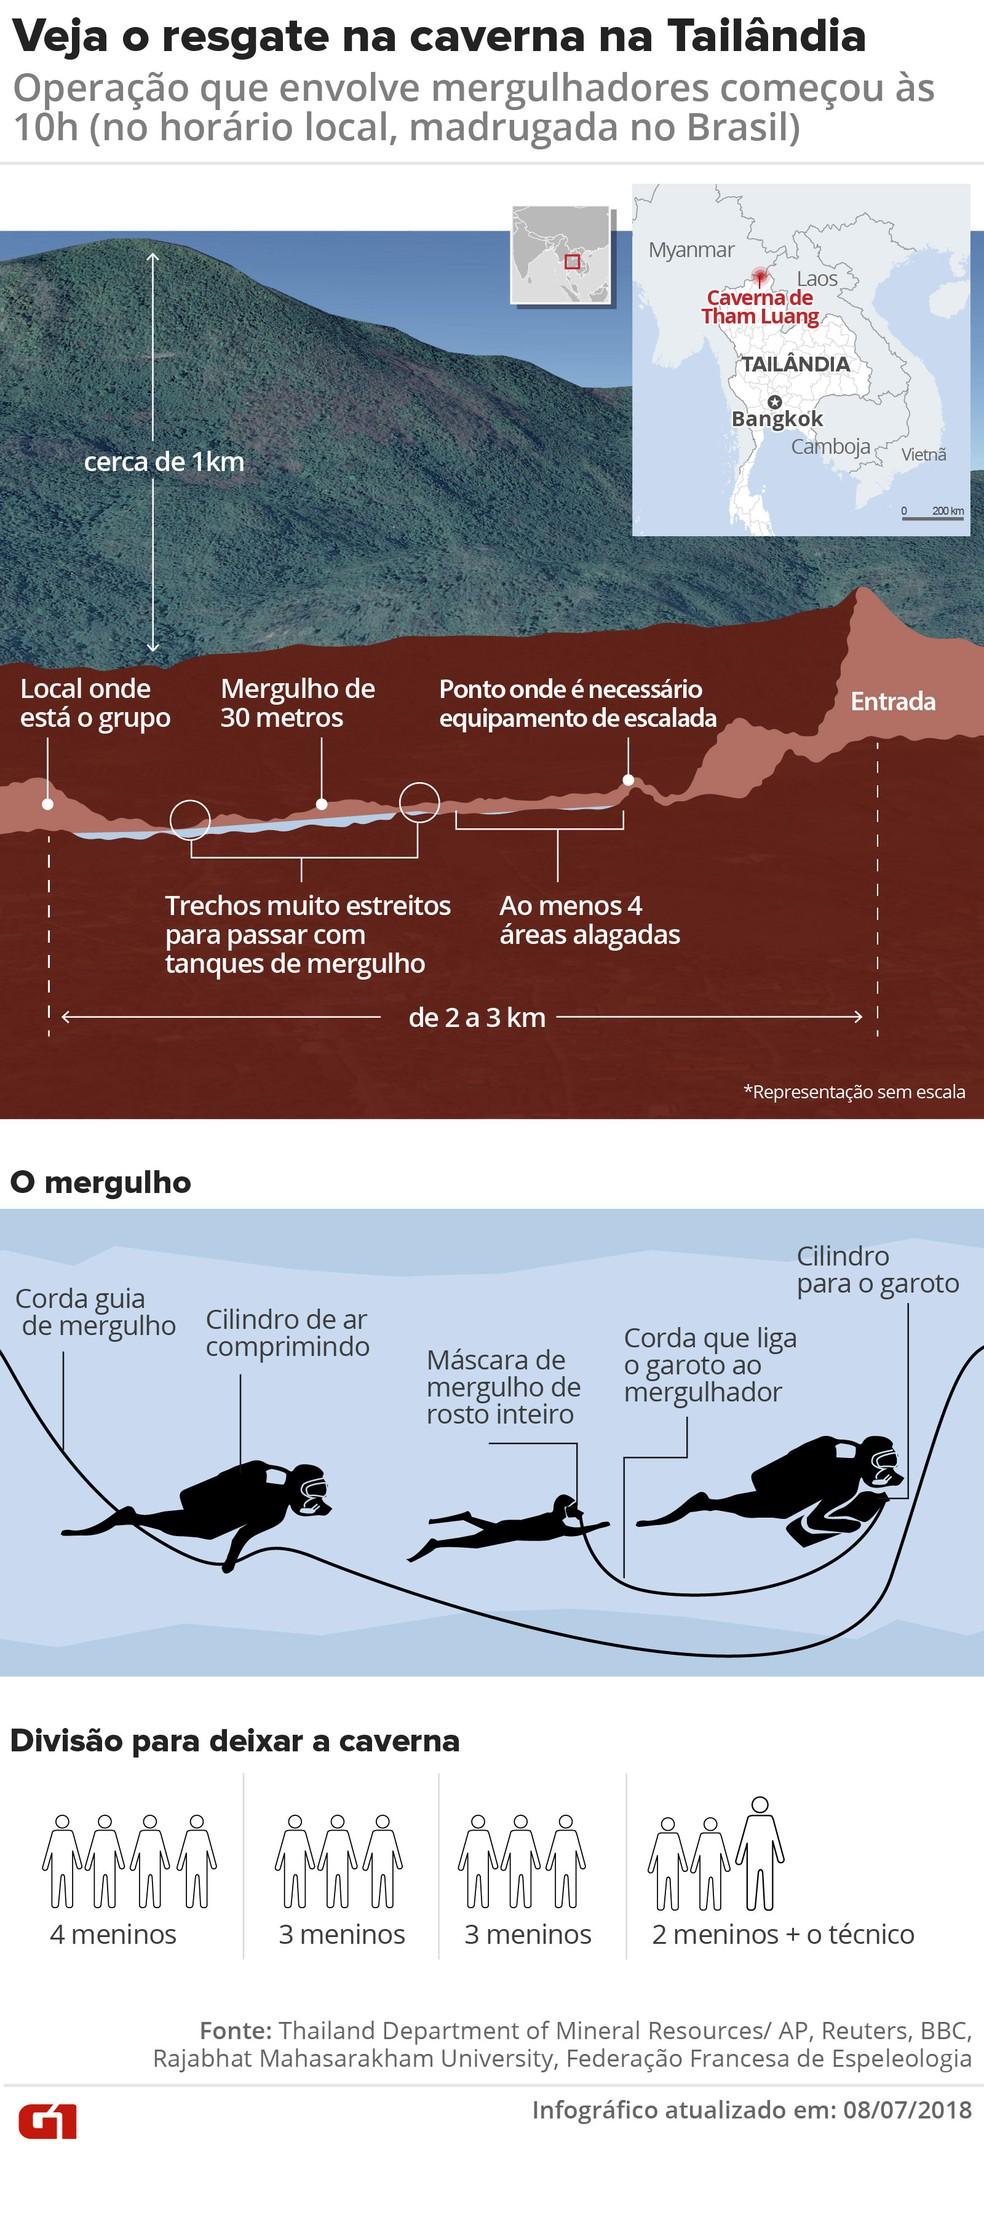 Infographic shows how organized the group rescue trapped in cave (Photo: Karina Almeida, Juliane Monteiro and Betta Jaworski/G1)